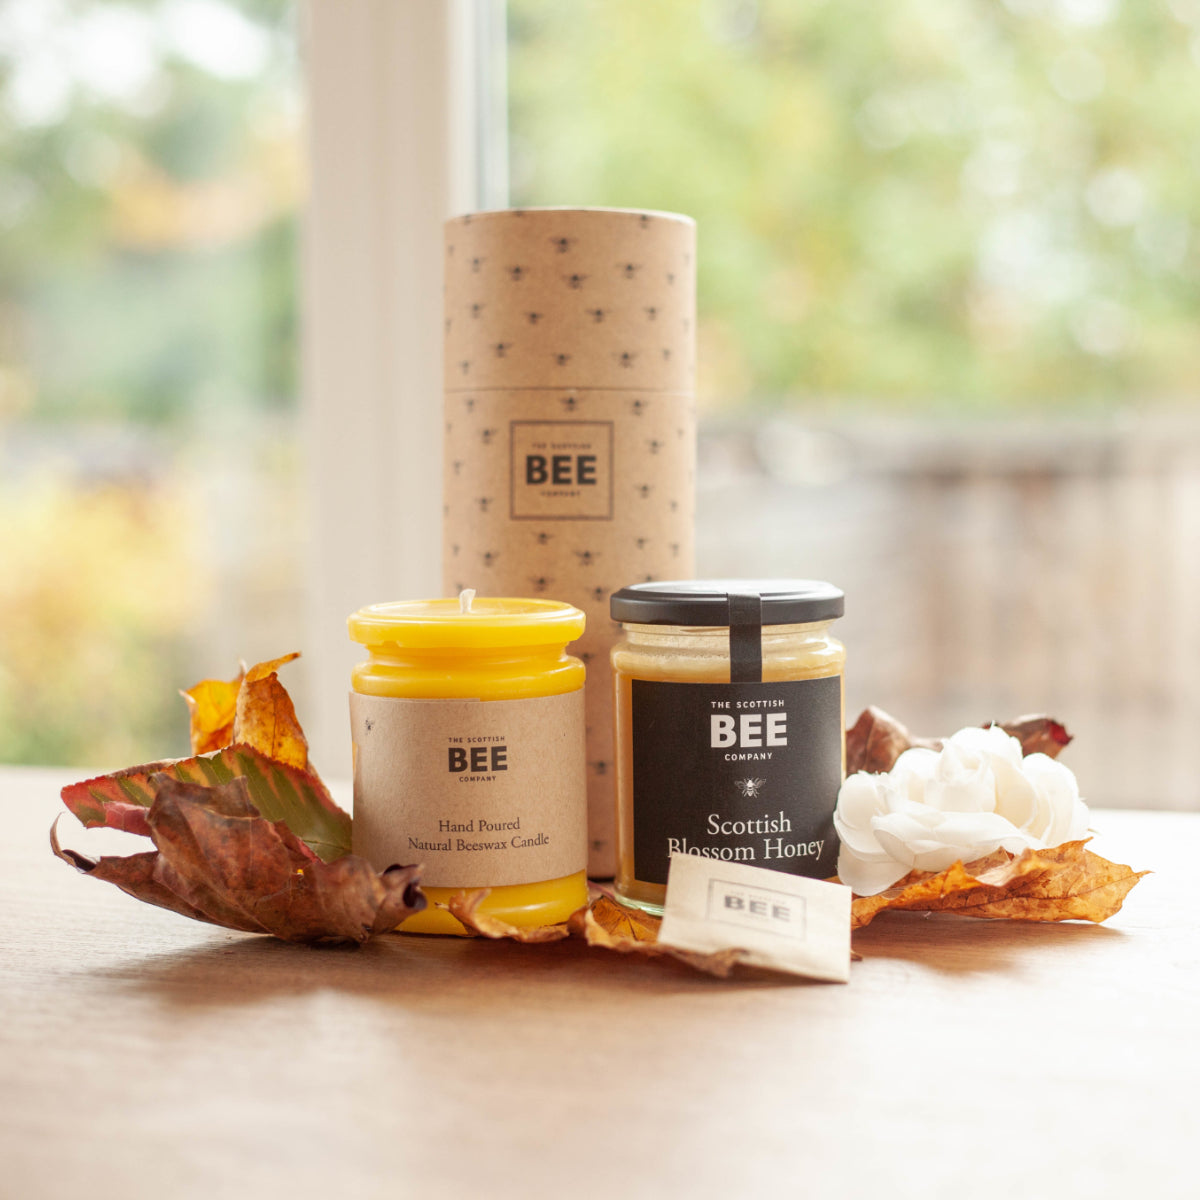 A gift pack of Scottish Blossom Honey and an unscented yellow beeswax candle